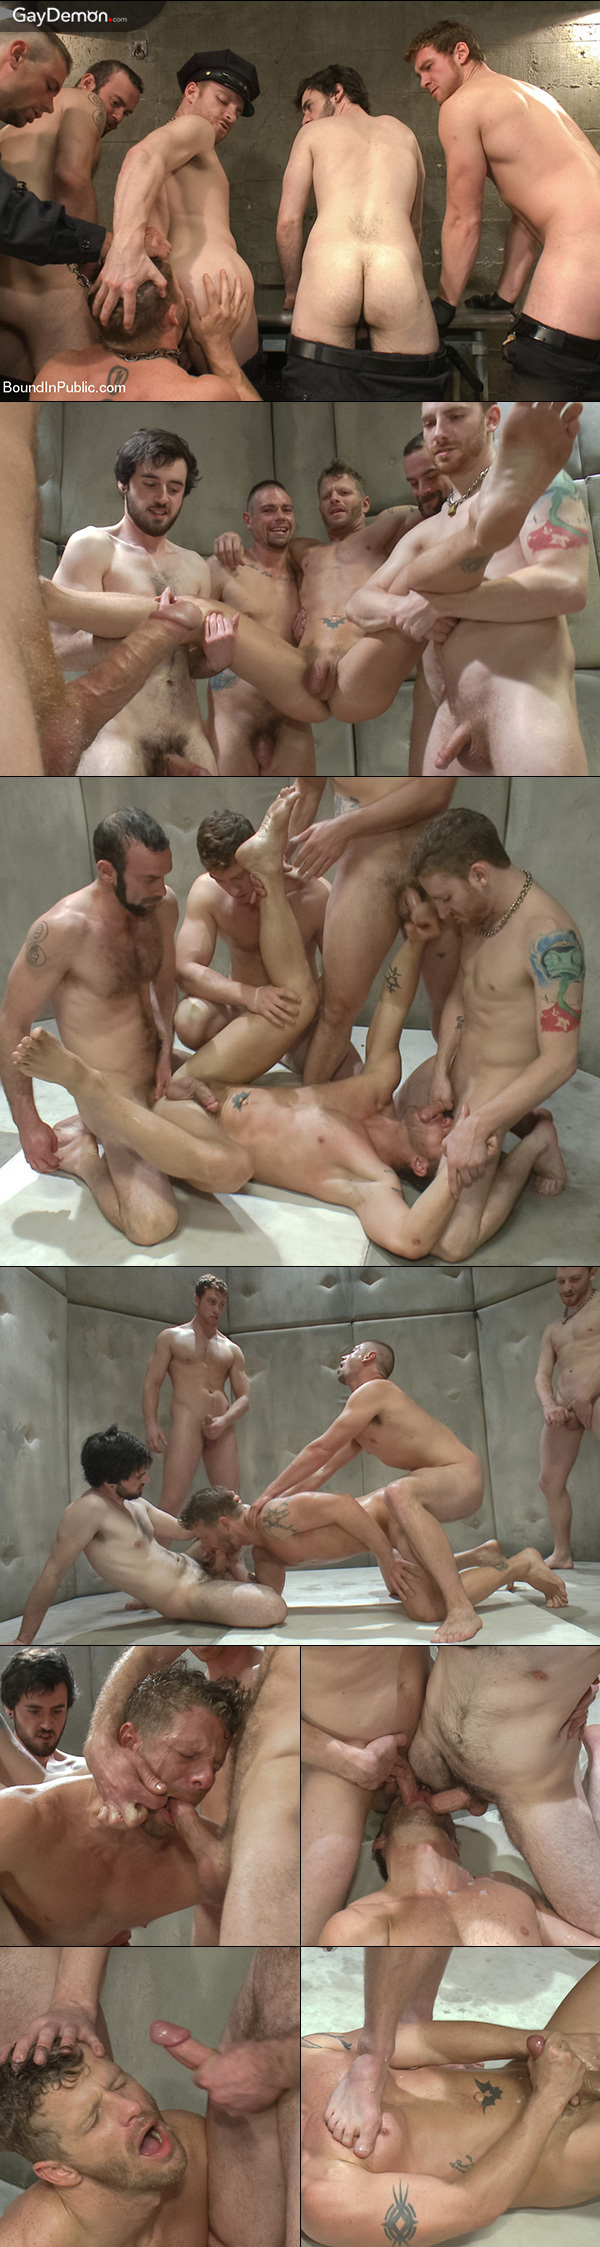 Jail House Gangbang